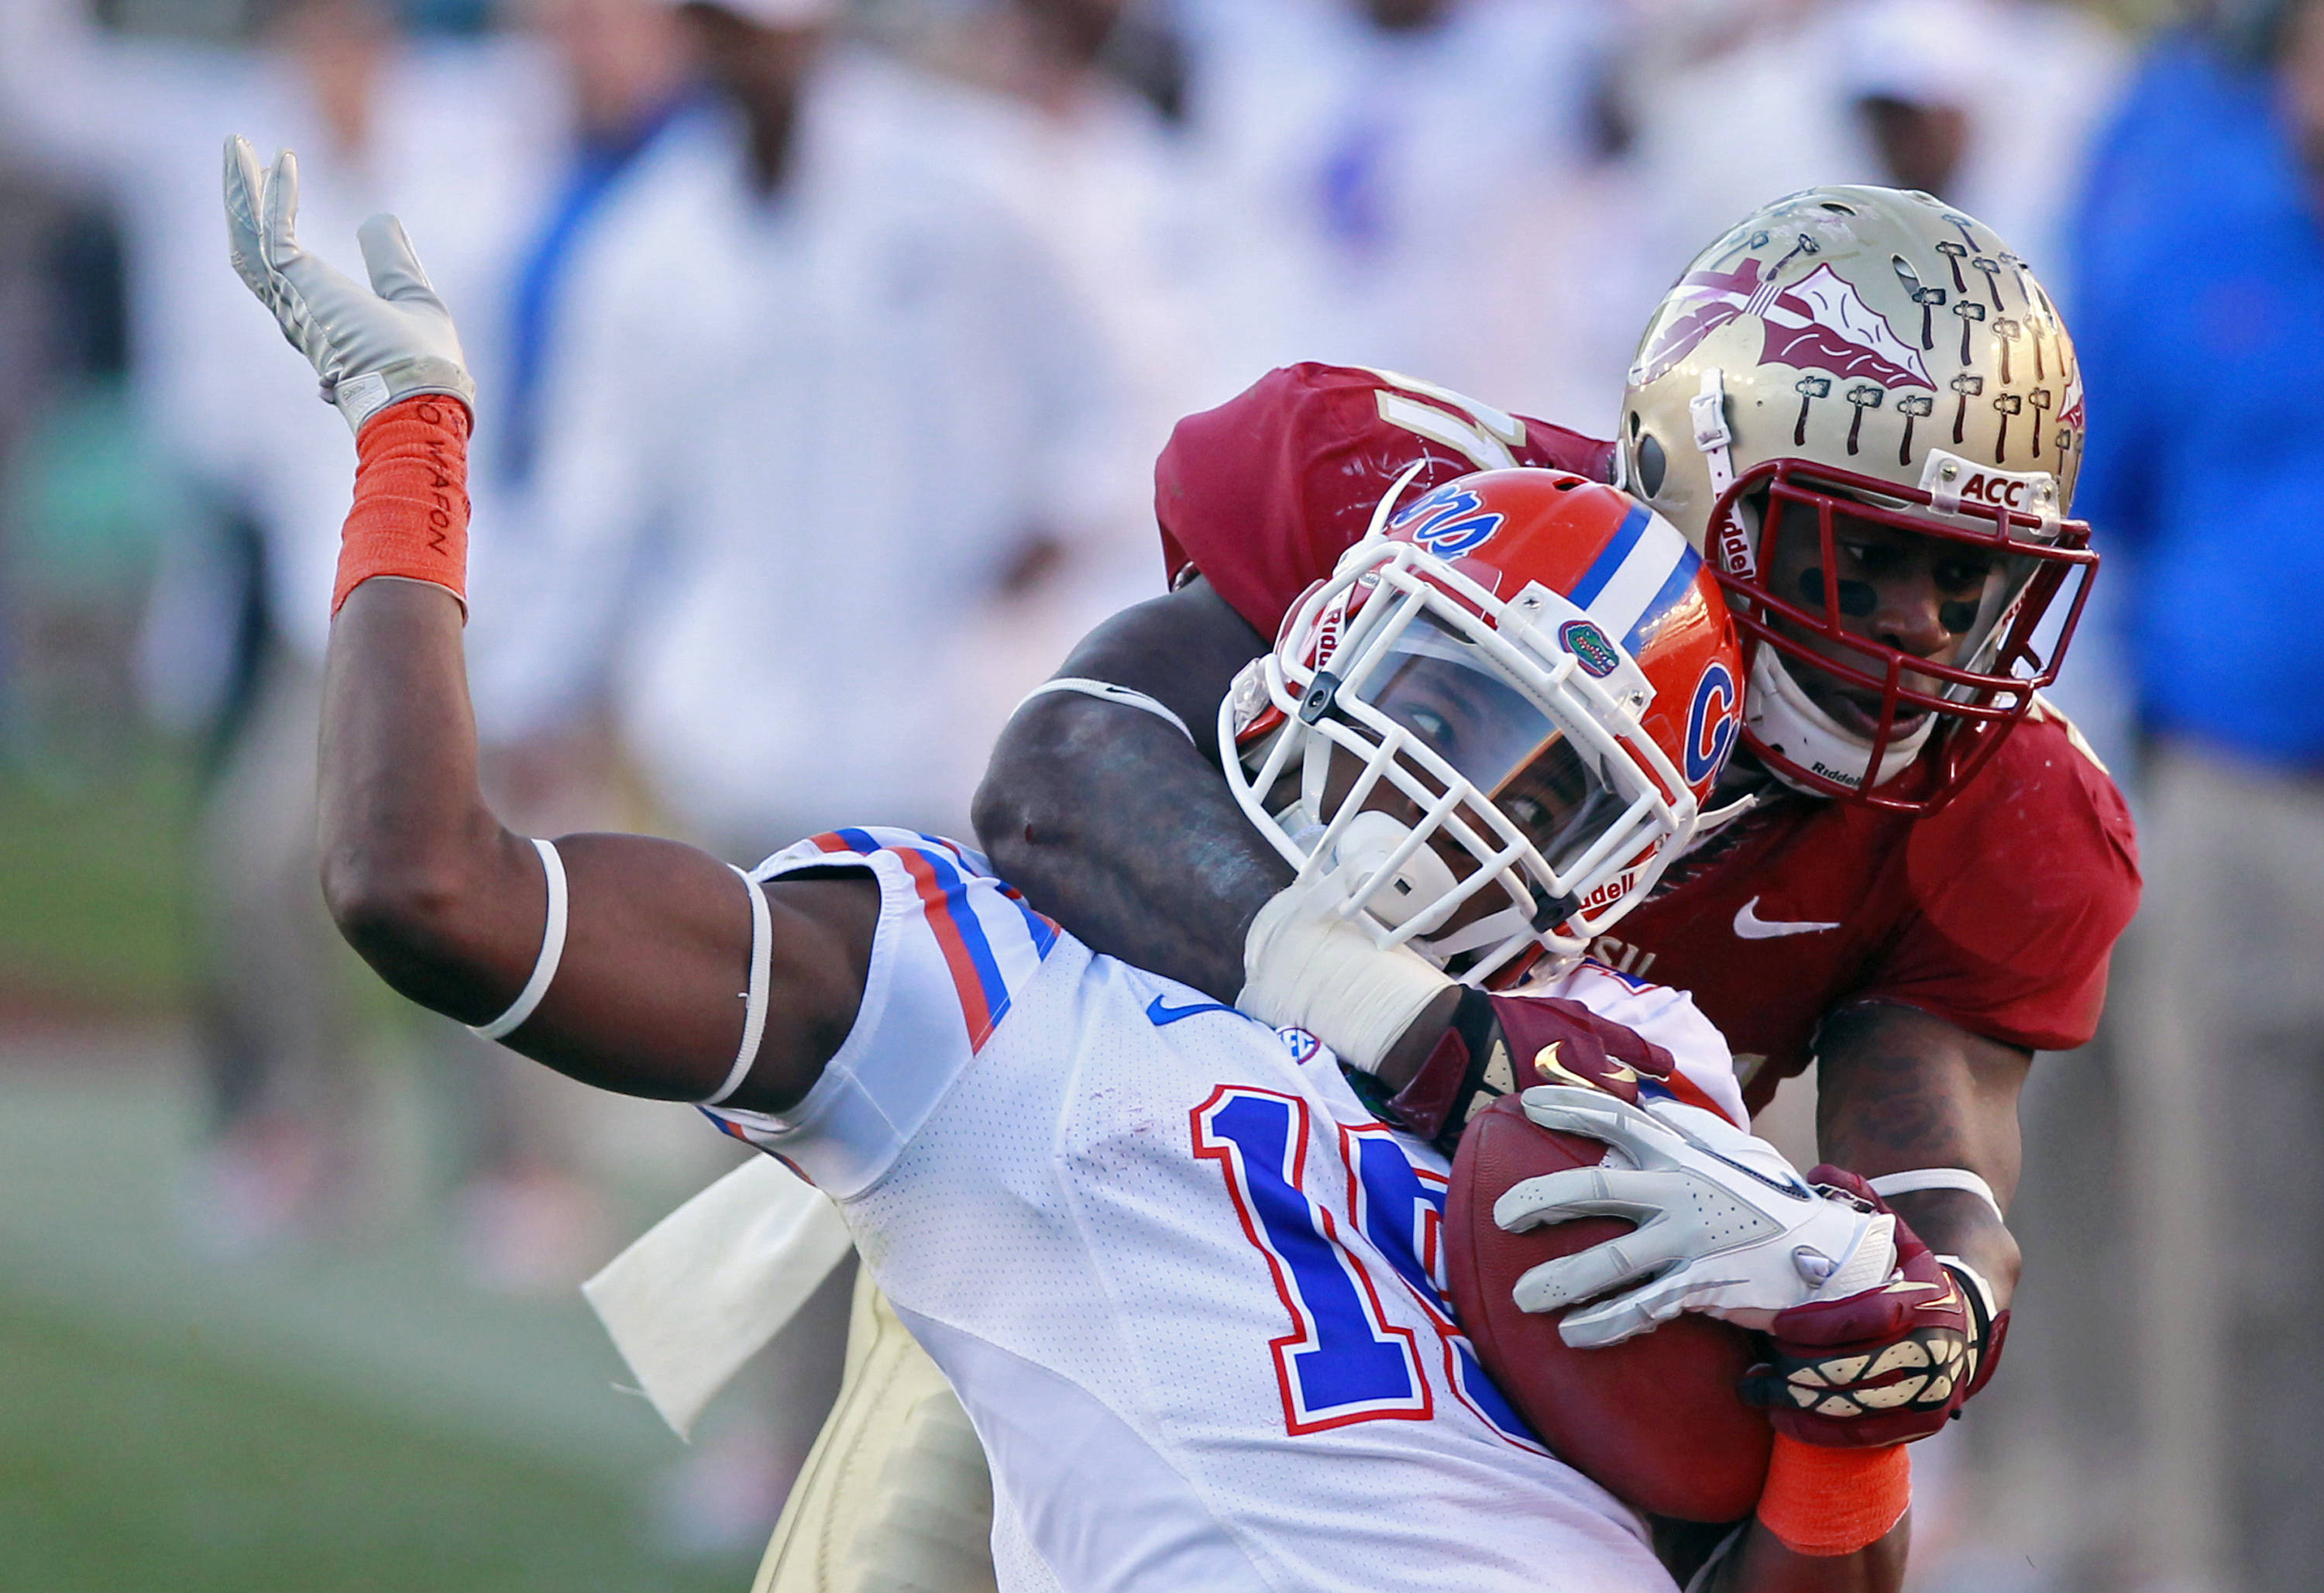 Florida State defensive end Giorgio Newberry, right, tackles Florida receiver Ryan Parrish. (AP Photo/John Raoux)